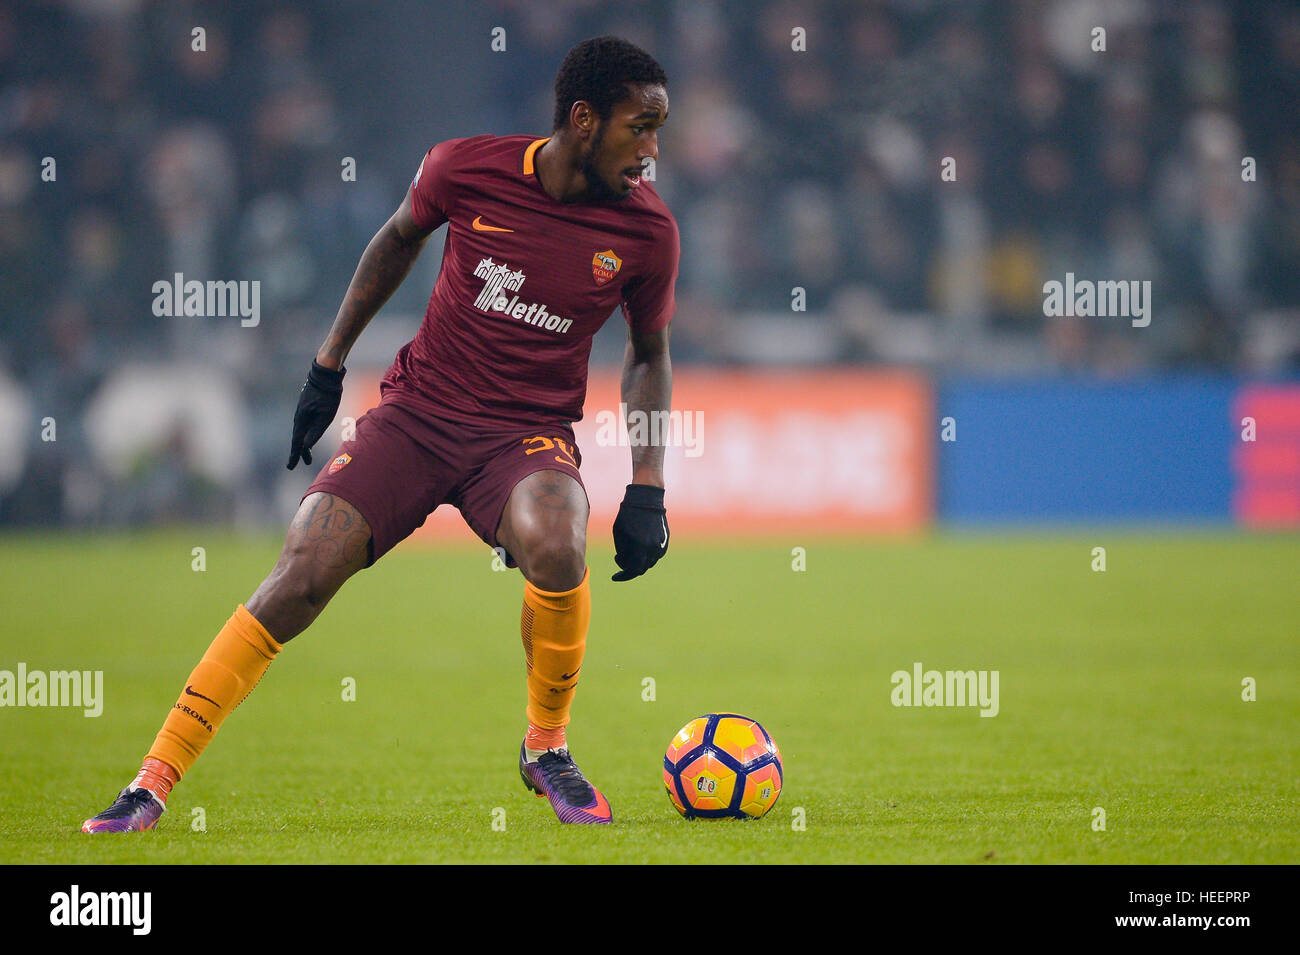 Turin, Italy. 2016, 17 december: Gerson of AS Roma in action during the Serie A football match between Juventus - Stock Image